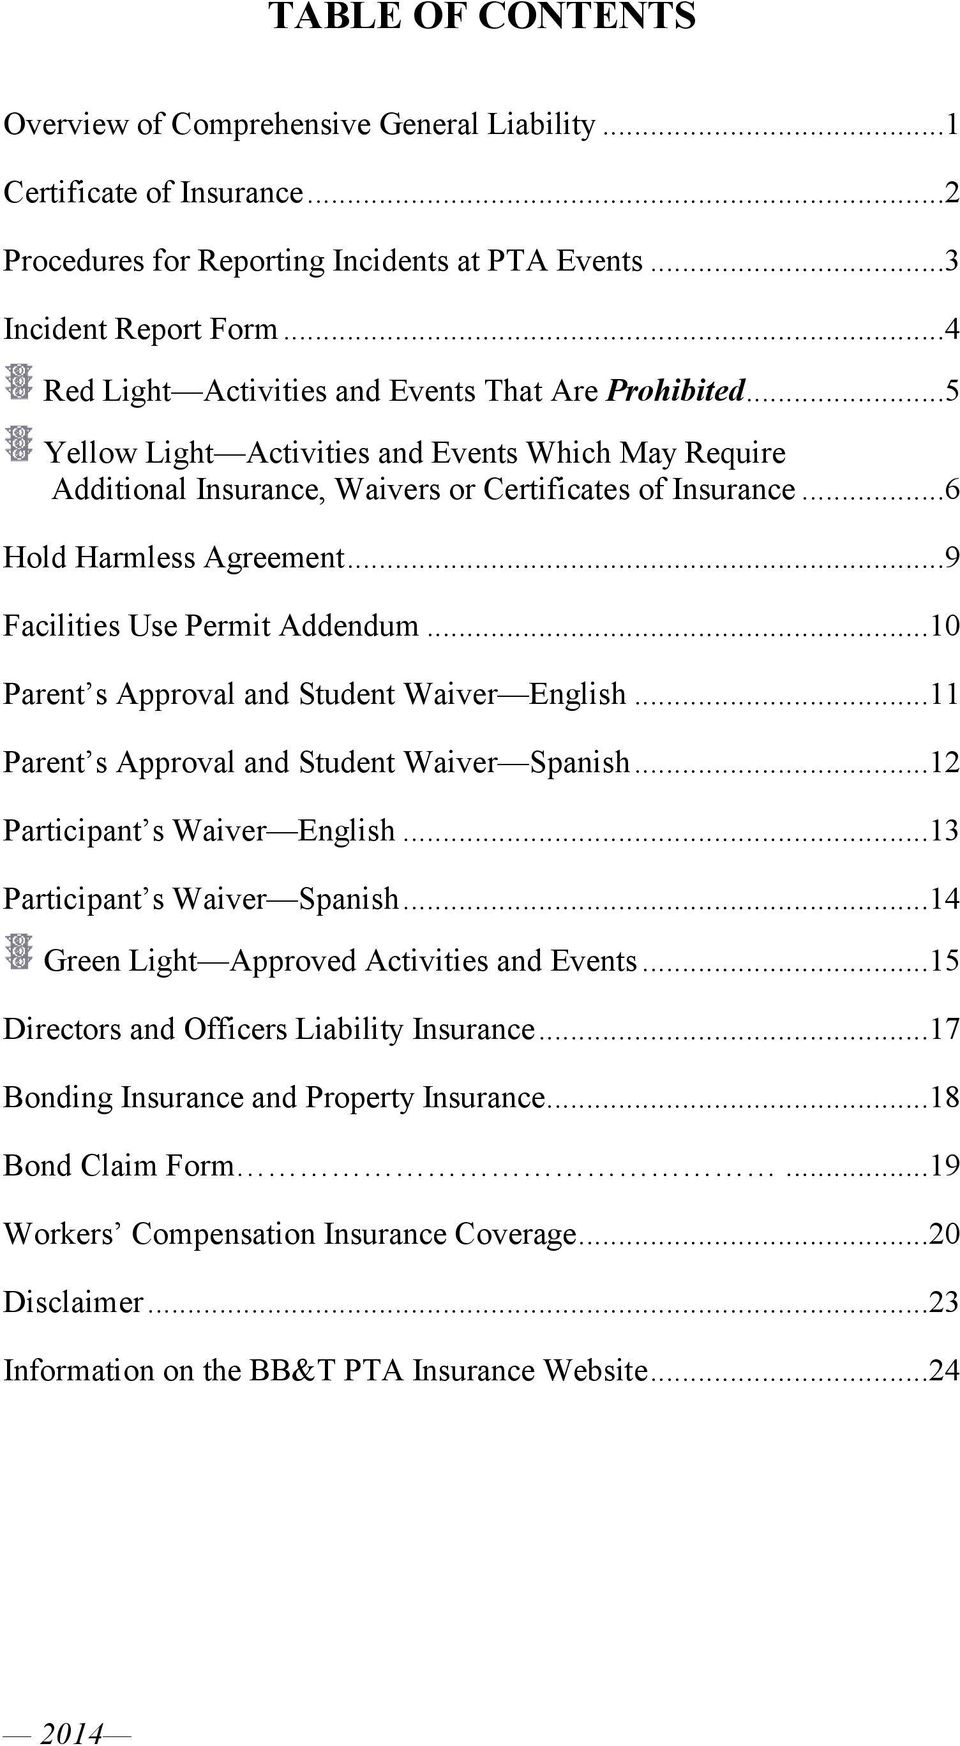 ..9 Facilities Use Permit Addendum...10 Parent s Approval and Student Waiver English...11 Parent s Approval and Student Waiver Spanish...12 Participant s Waiver English.